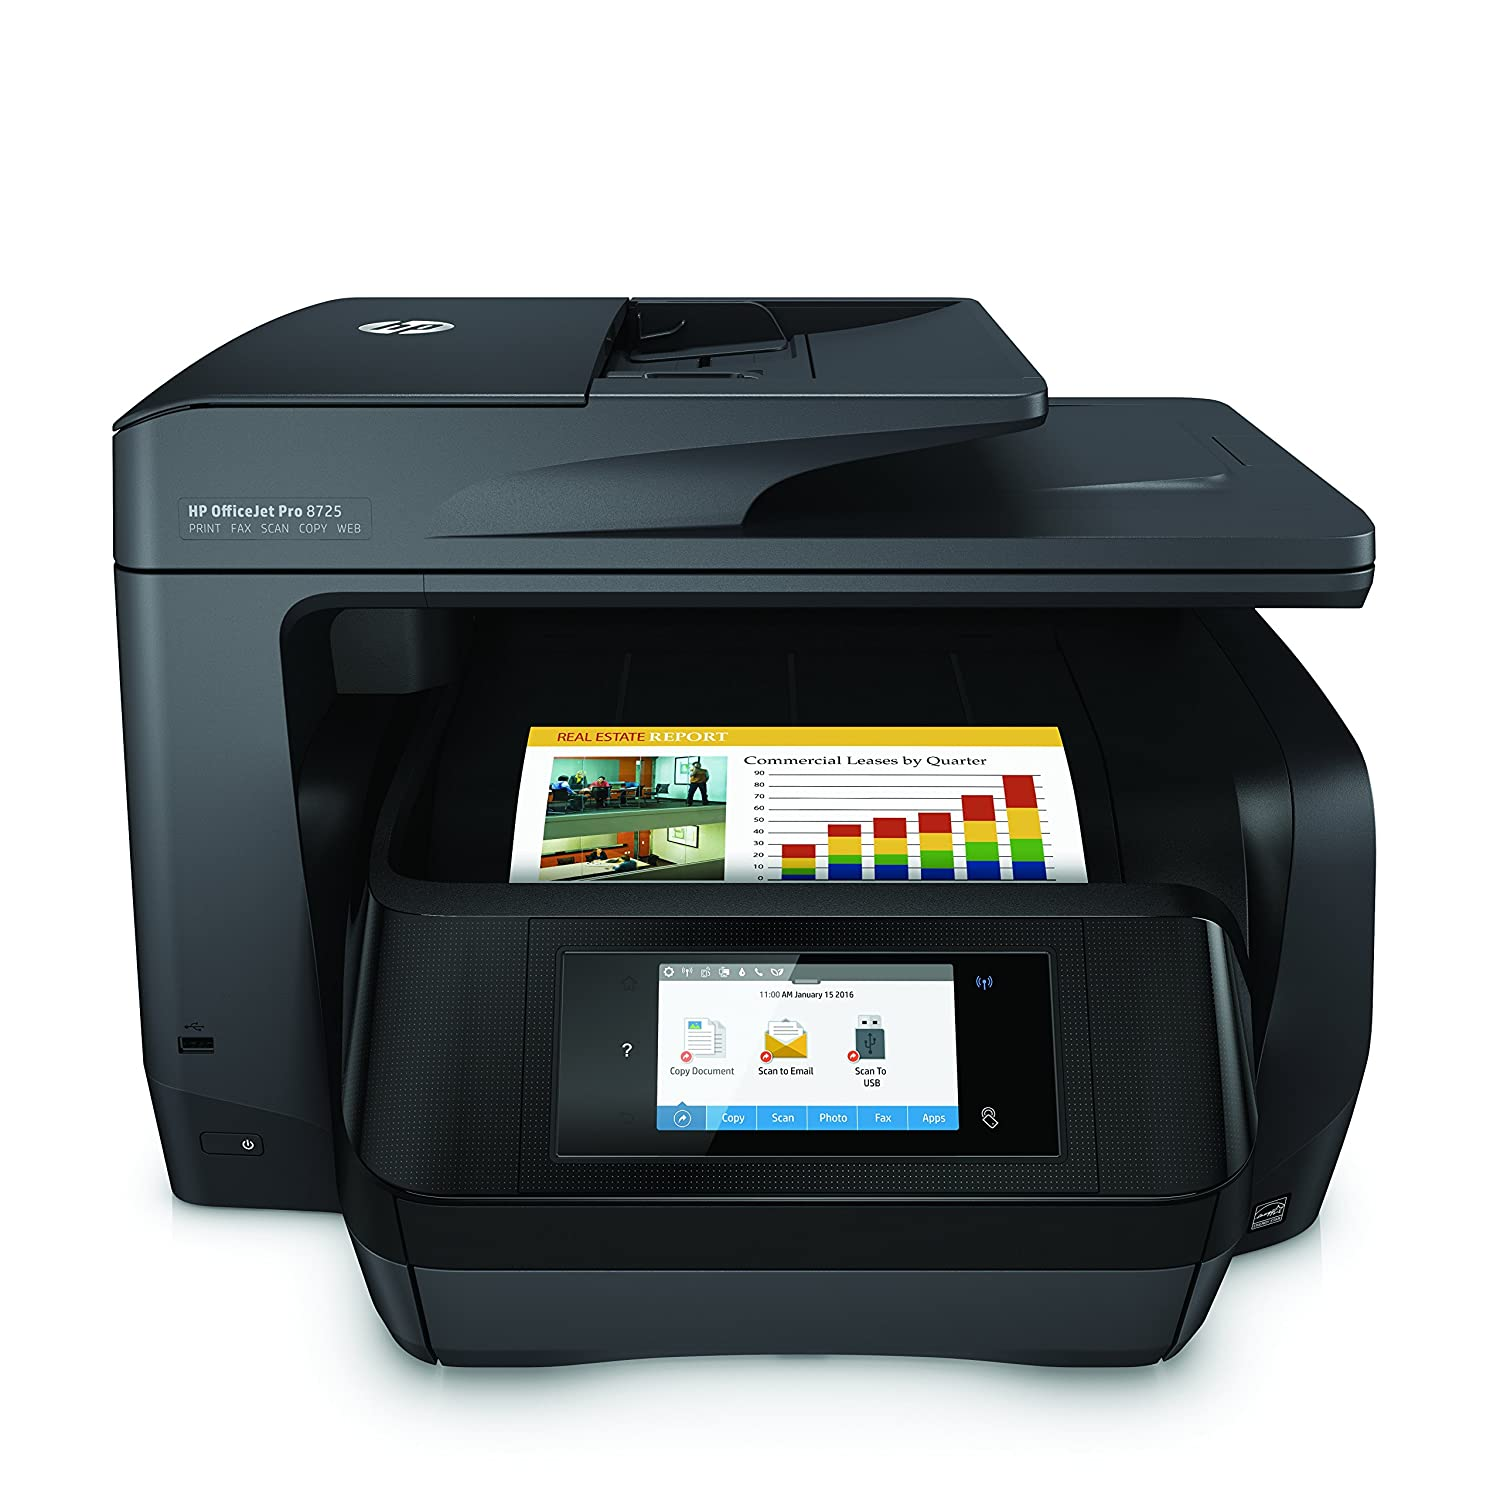 Instant Ink Ready Printer, setup + XL oem inks HP OfficeJet Pro 8725 All-in-One Printer